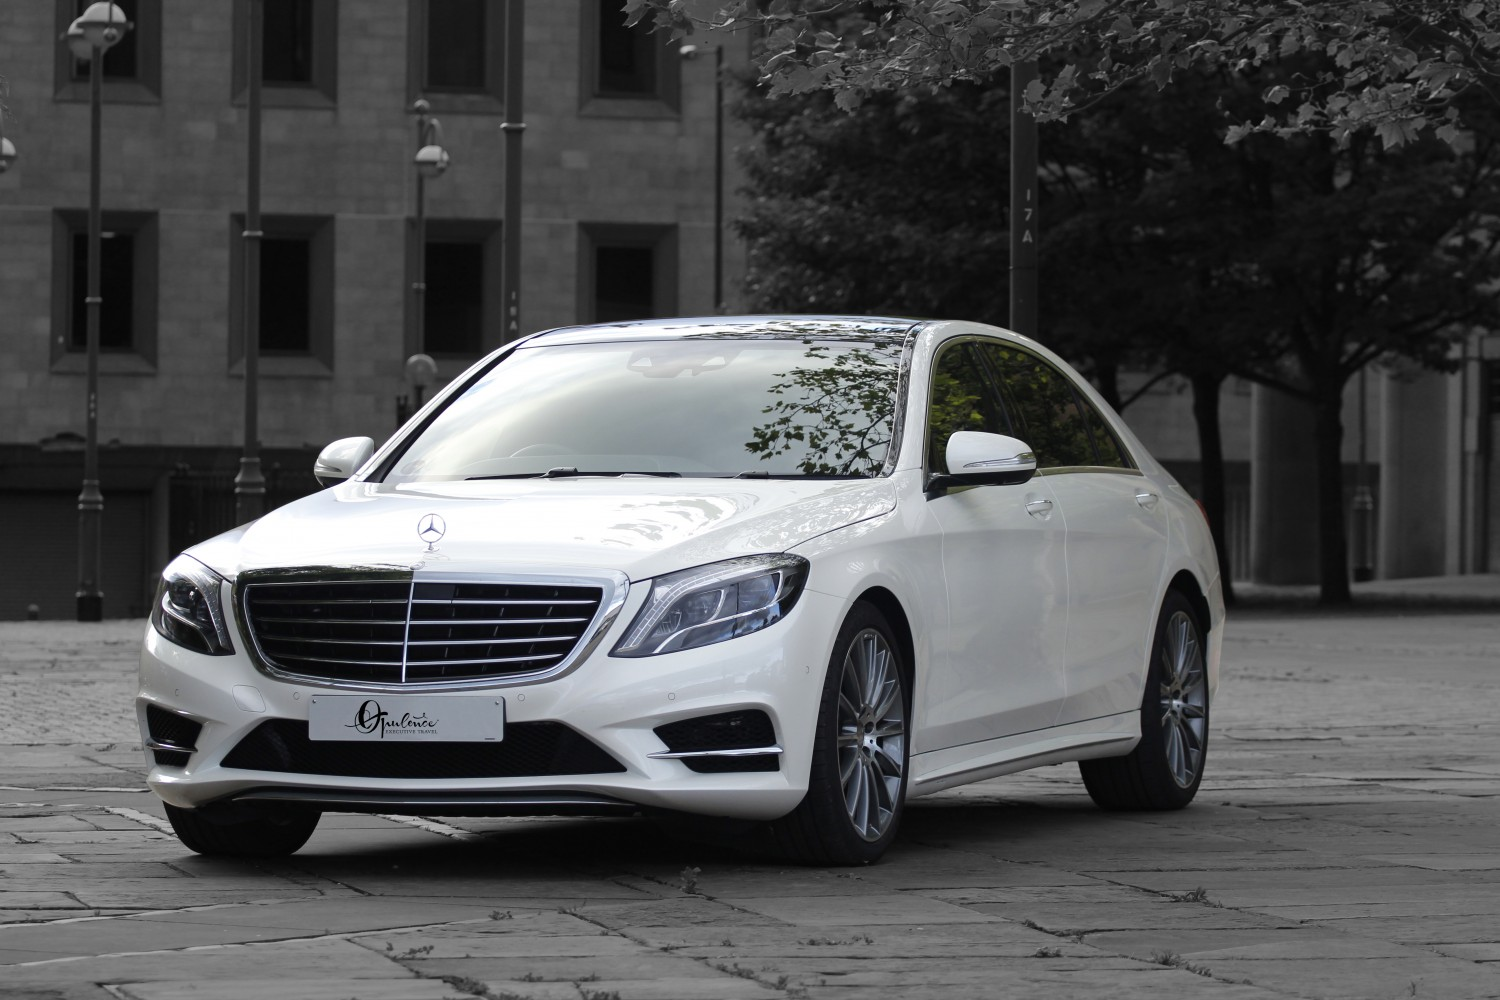 Mercedes S Class cars for hire